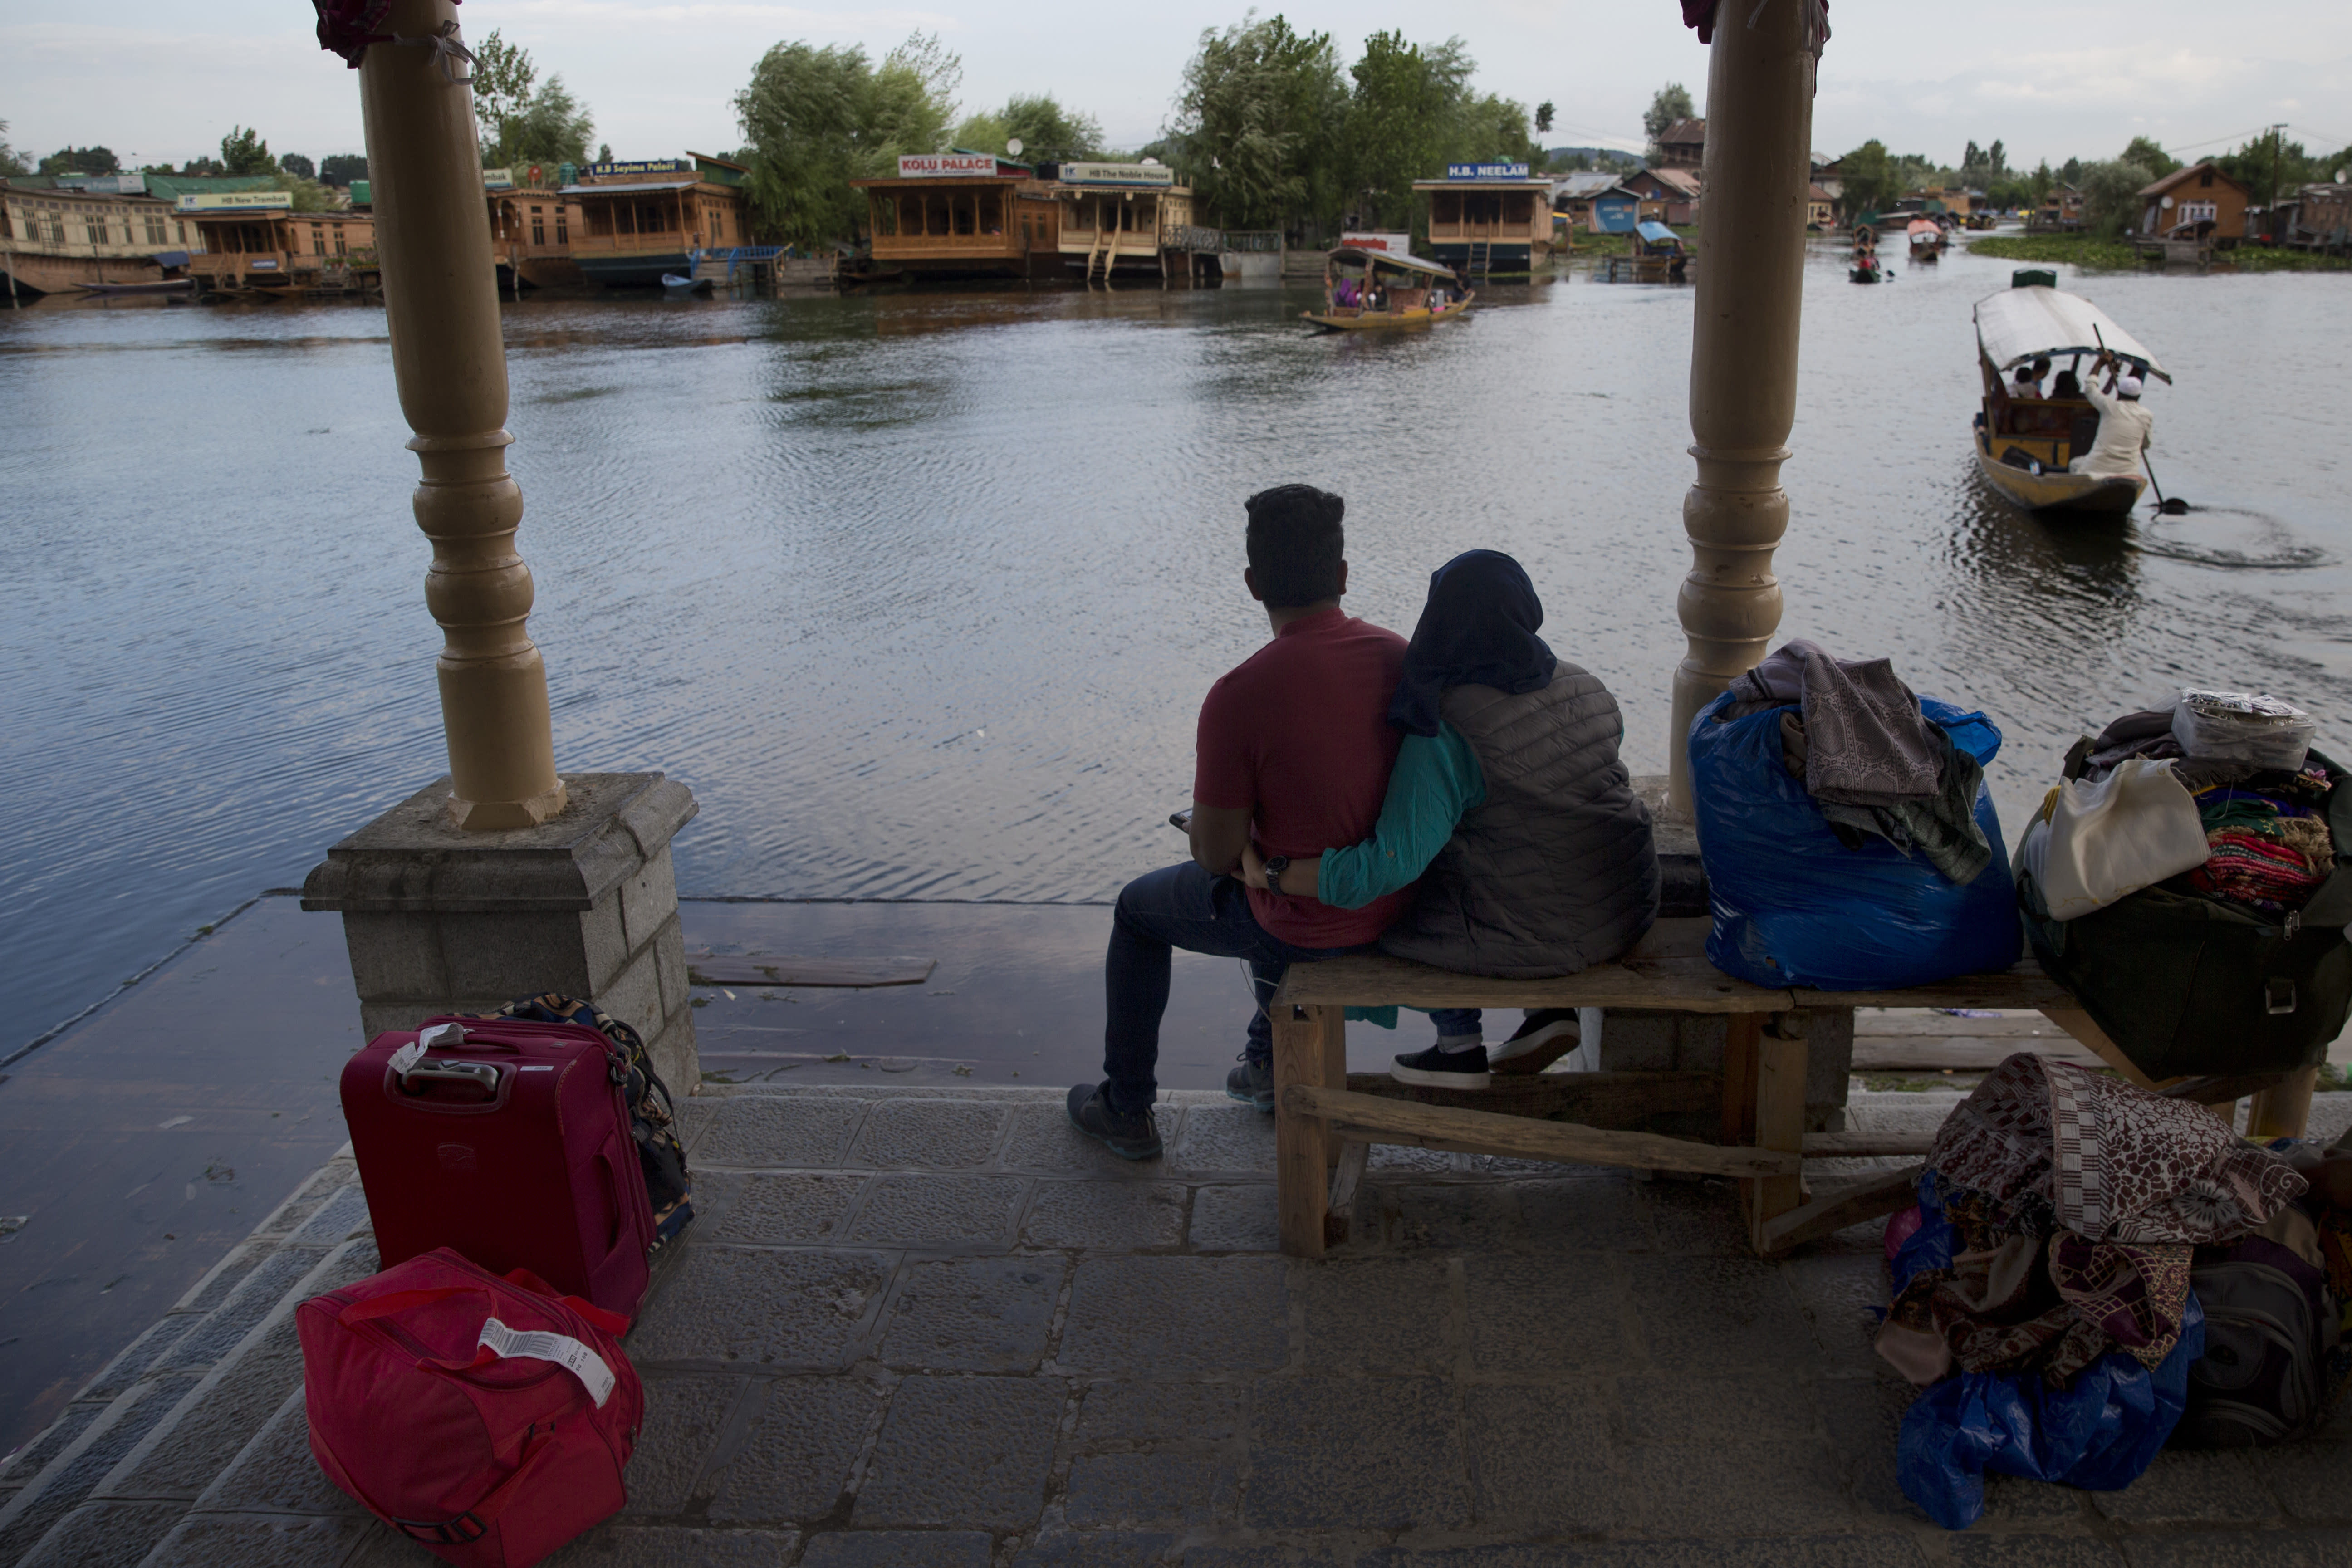 FILE - In this Saturday, Aug. 3, 2019, file photo, an Indian couple waits for transport as they prepare to leave Srinagar, Indian controlled Kashmir. Authorities in Indian-controlled Kashmir are allowing tourists back into the region two months after ordering them to leave, citing security concerns. The local government had instructed tourists and Hindu pilgrims to leave on Aug. 2, three days before India stripped the Muslim-majority region of its statehood and special semi-autonomous status. (AP Photo/Dar Yasin, File)